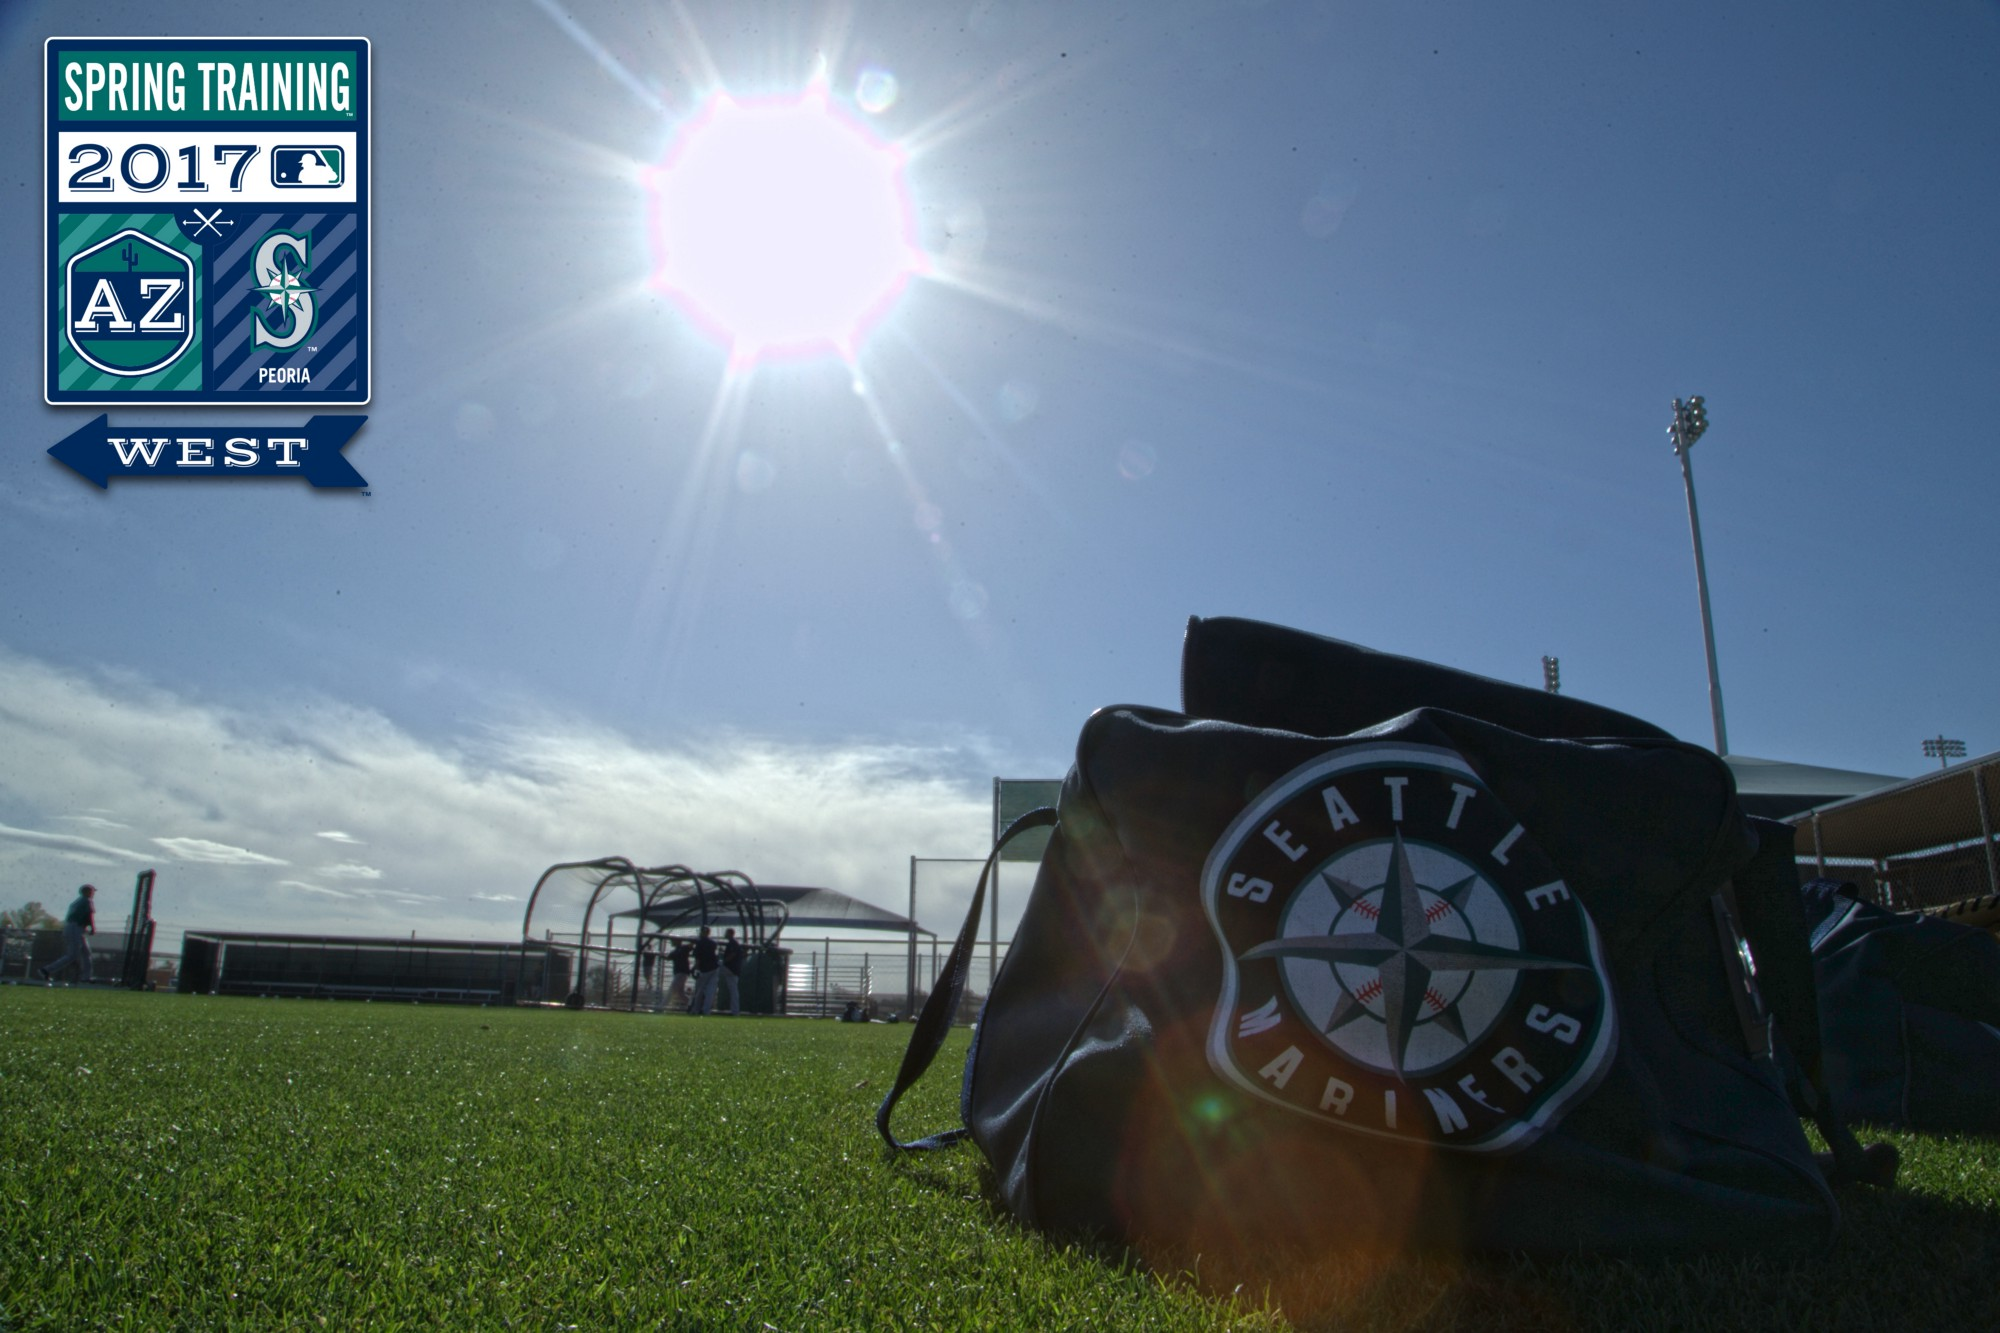 Mariners announce 2017 spring training schedule from the corner mariners announce 2017 spring training schedule sciox Gallery